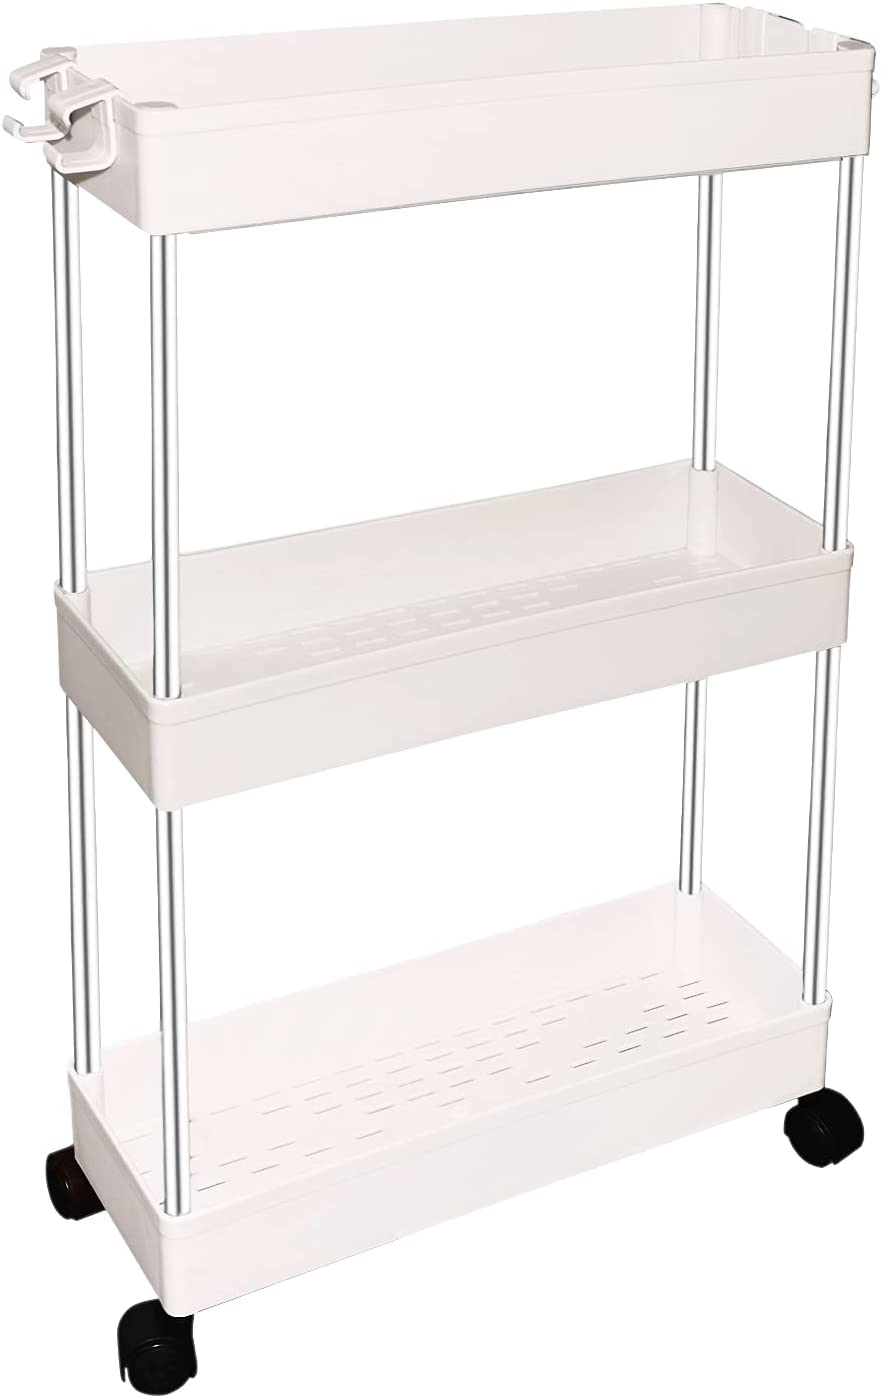 3 Tier Slim Storage Cart, Mobile Shelving Unit Organizer, Slide Out Movable Storage, Rolling Utility Cart Tower Rack with Handle for Office, Kitchen Bathroom Laundry Narrow Places (3 Tier-White B)